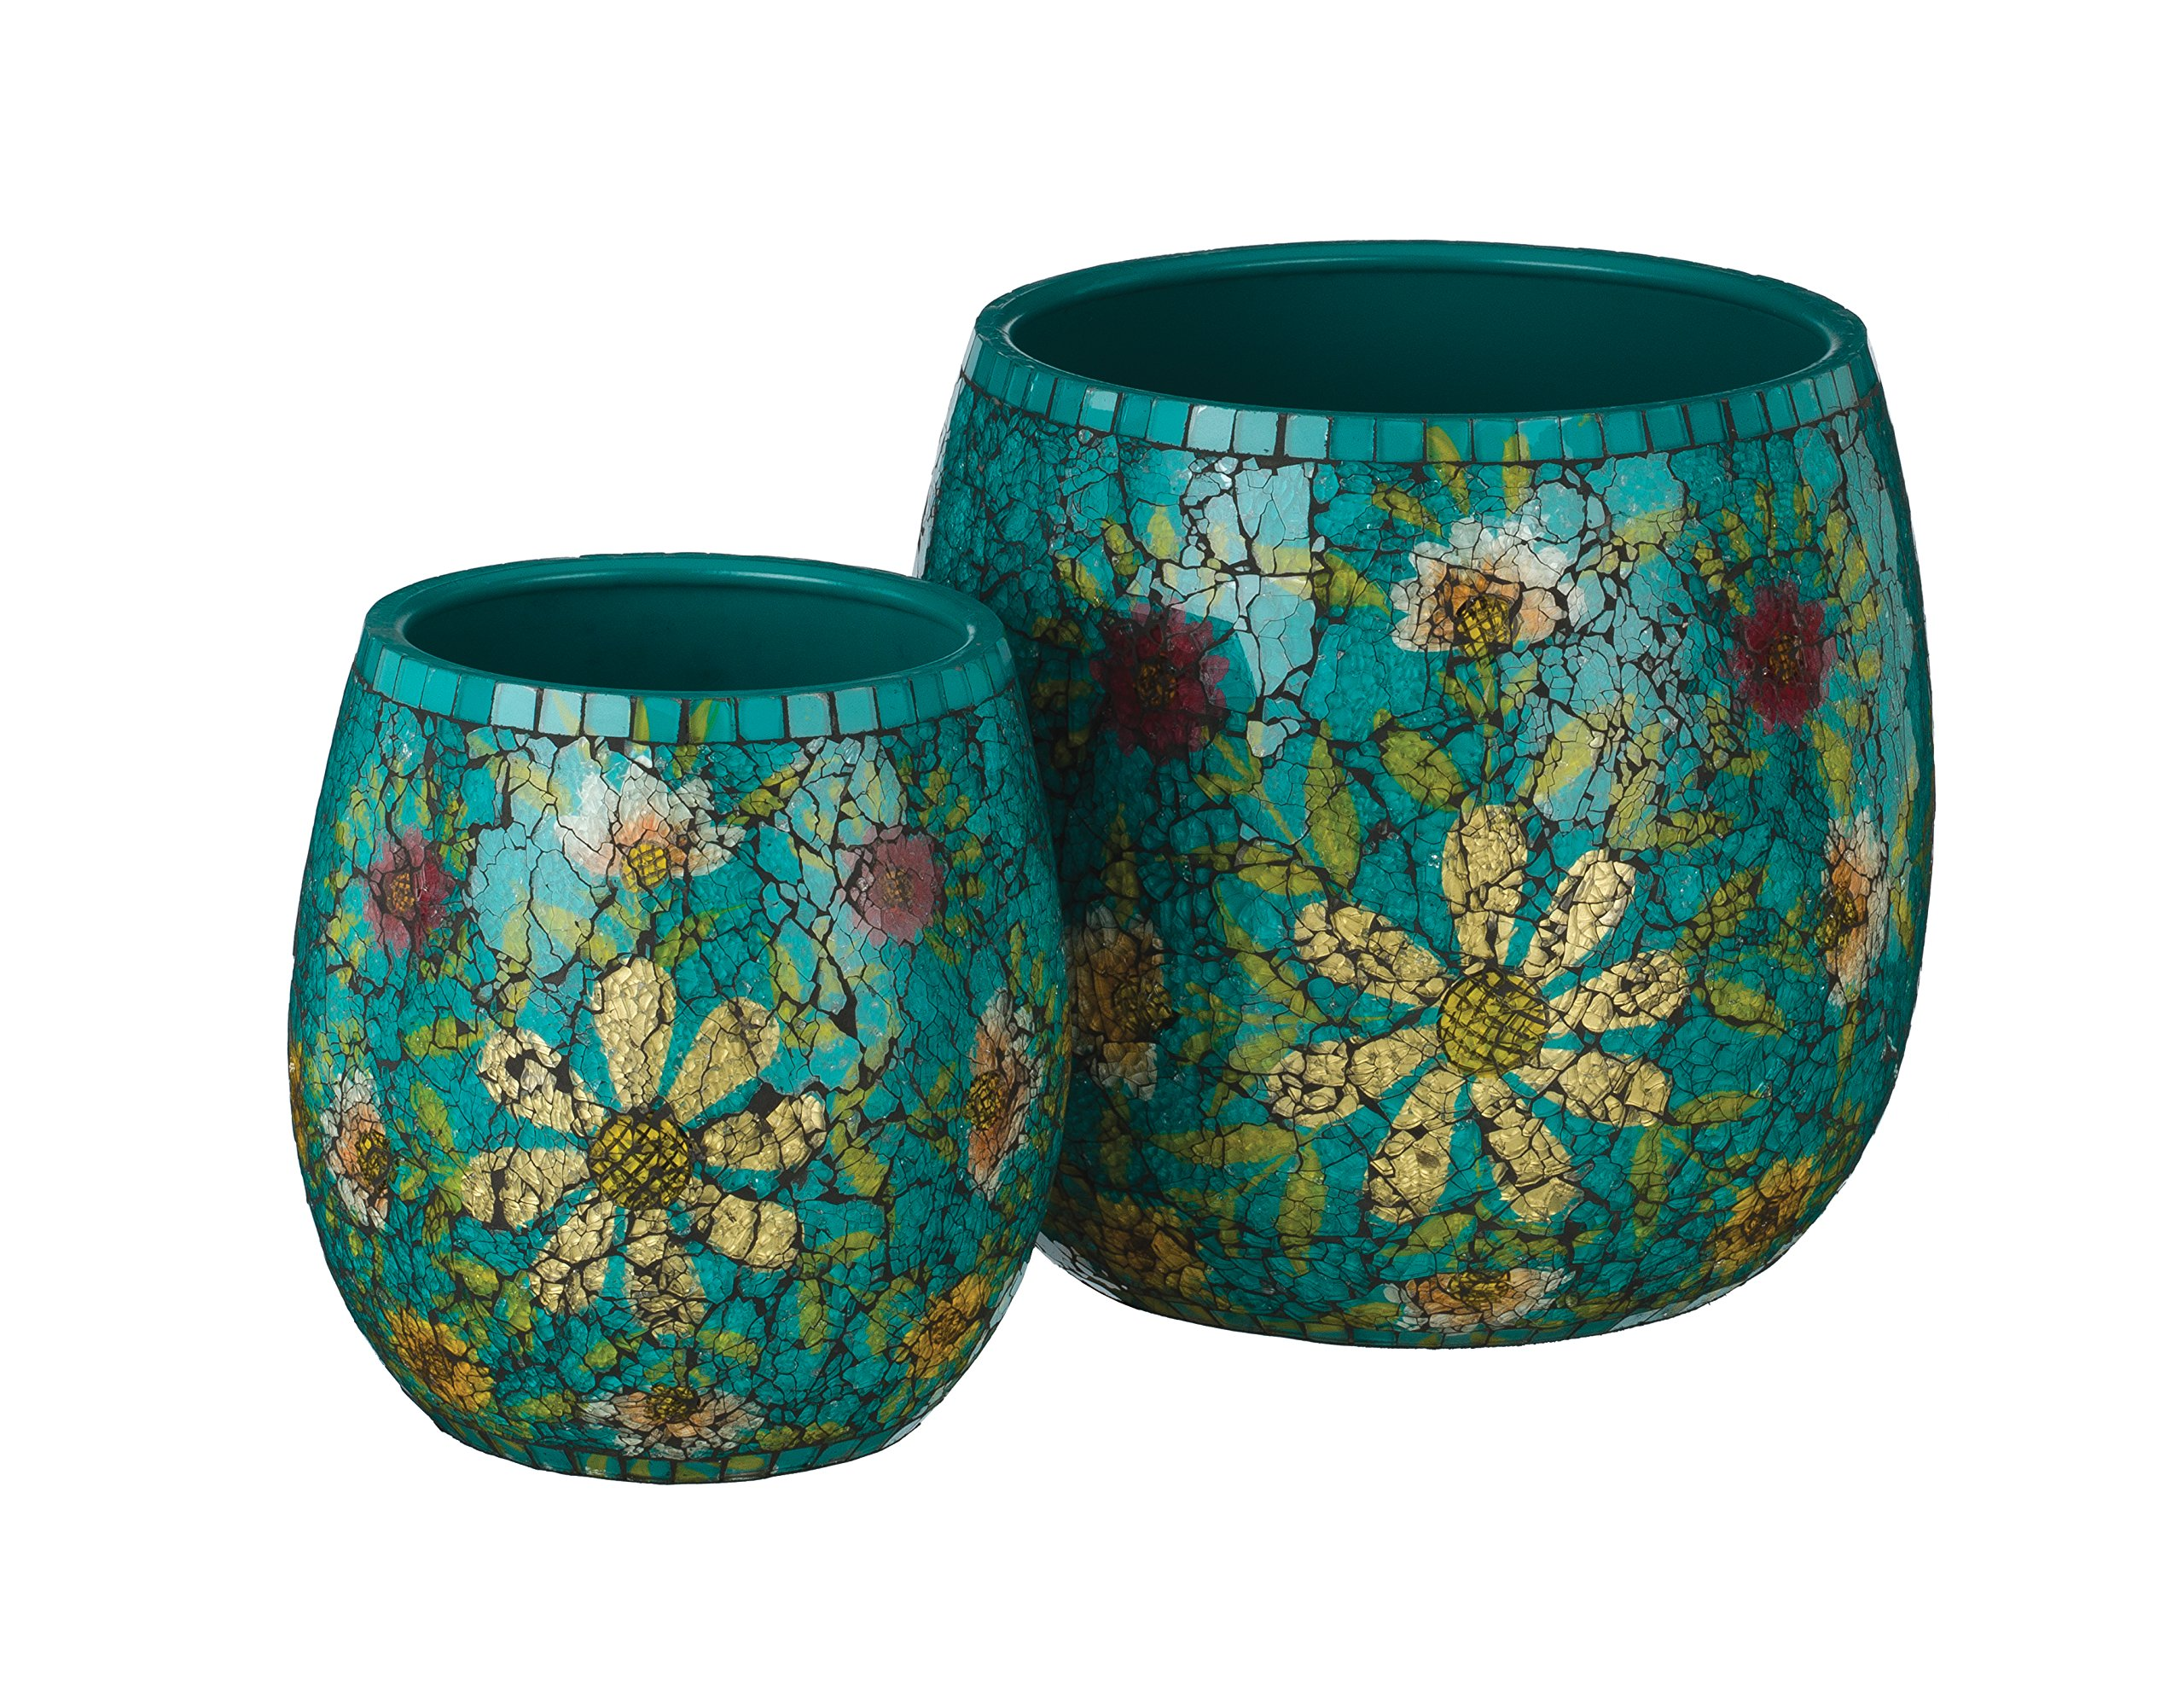 Regal Art & Gift Mosaic Planter (Set of 2), Teal by Regal Art & Gift